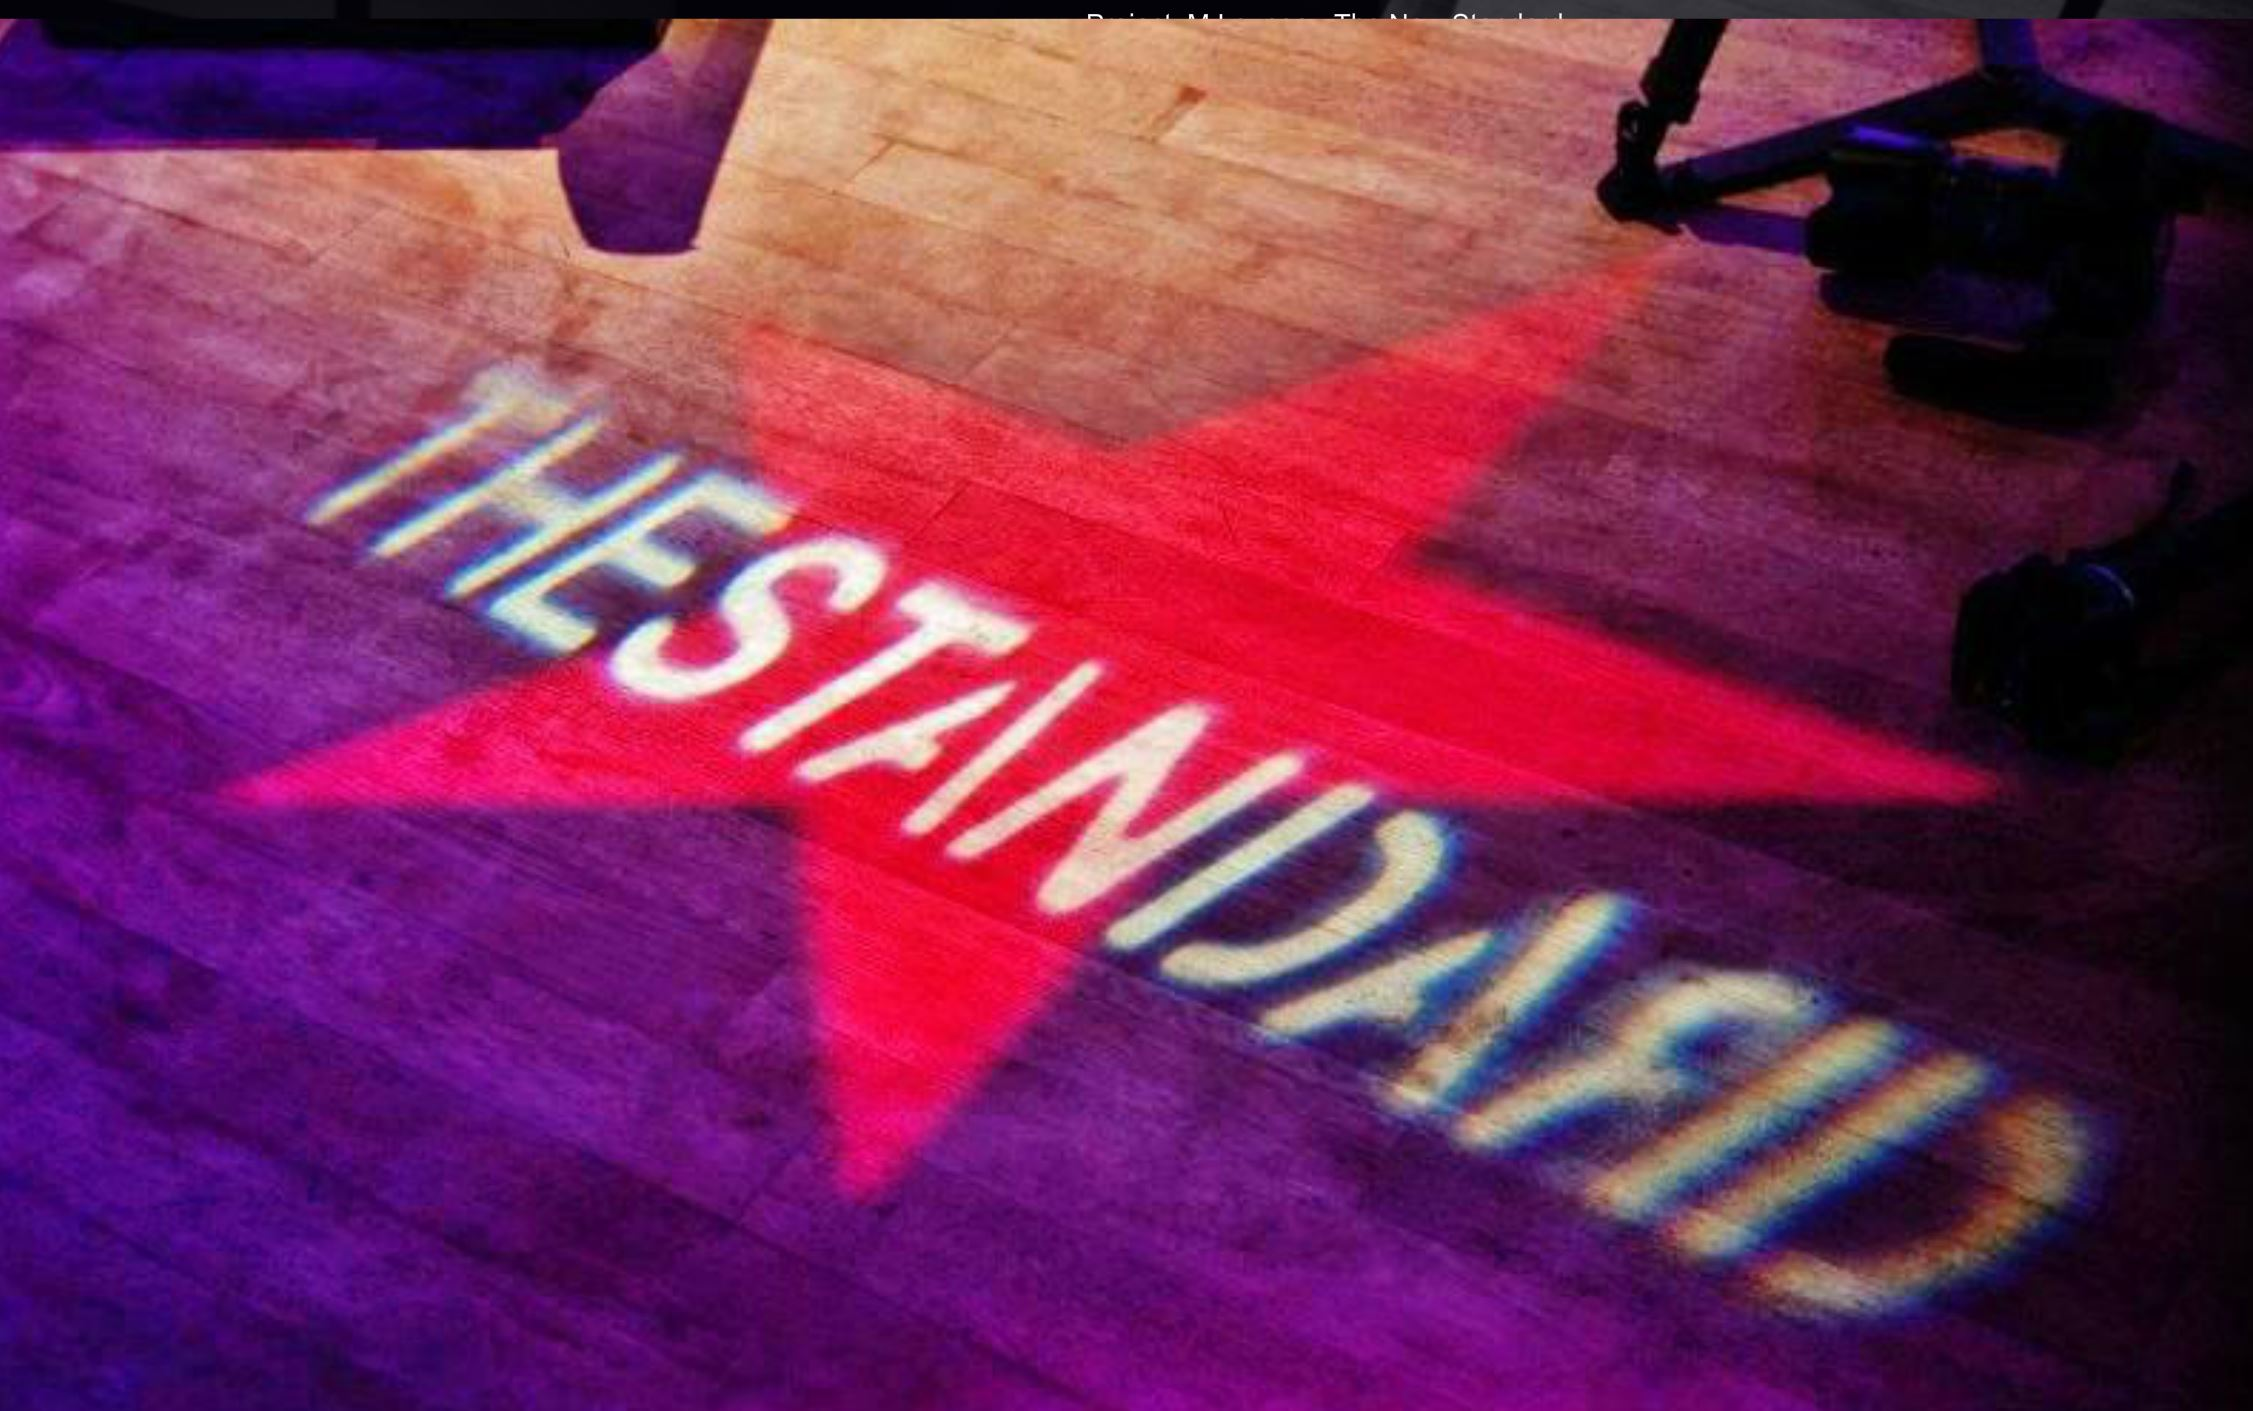 The Standard Gobo signage